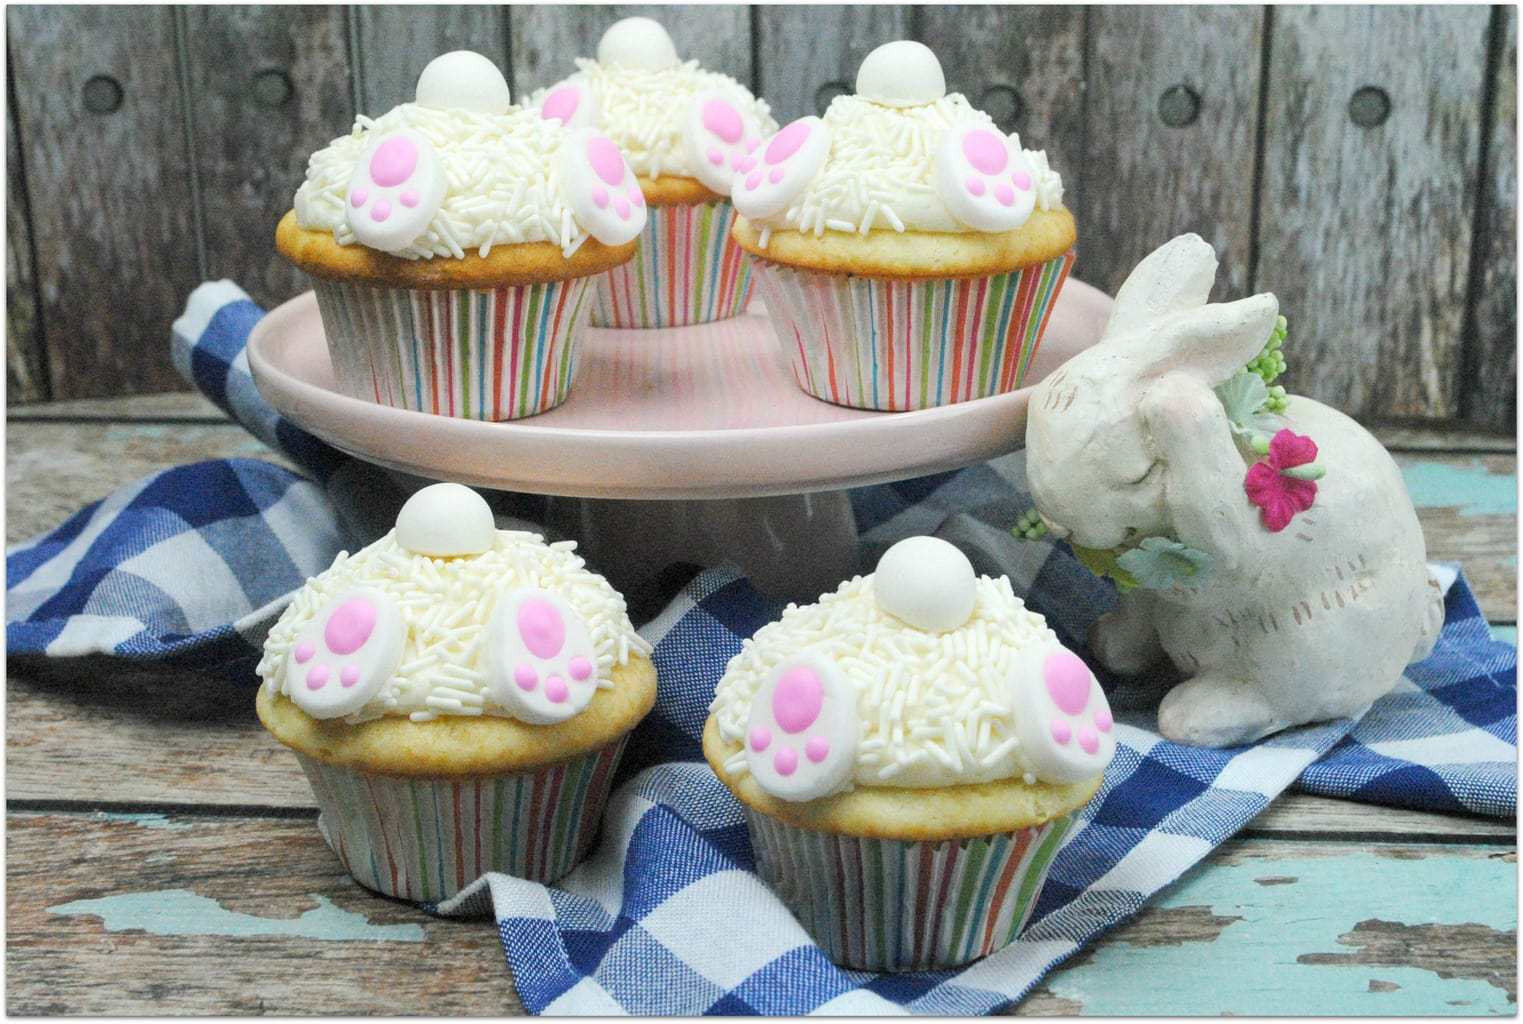 These Easter Bunny Cake Cupcakes are so stinkin' cute. Though I might prefer a cake if I'm making something for an elegant gathering of adults, cupcakes are always a better idea when it's a family event or a party where kids will be present.